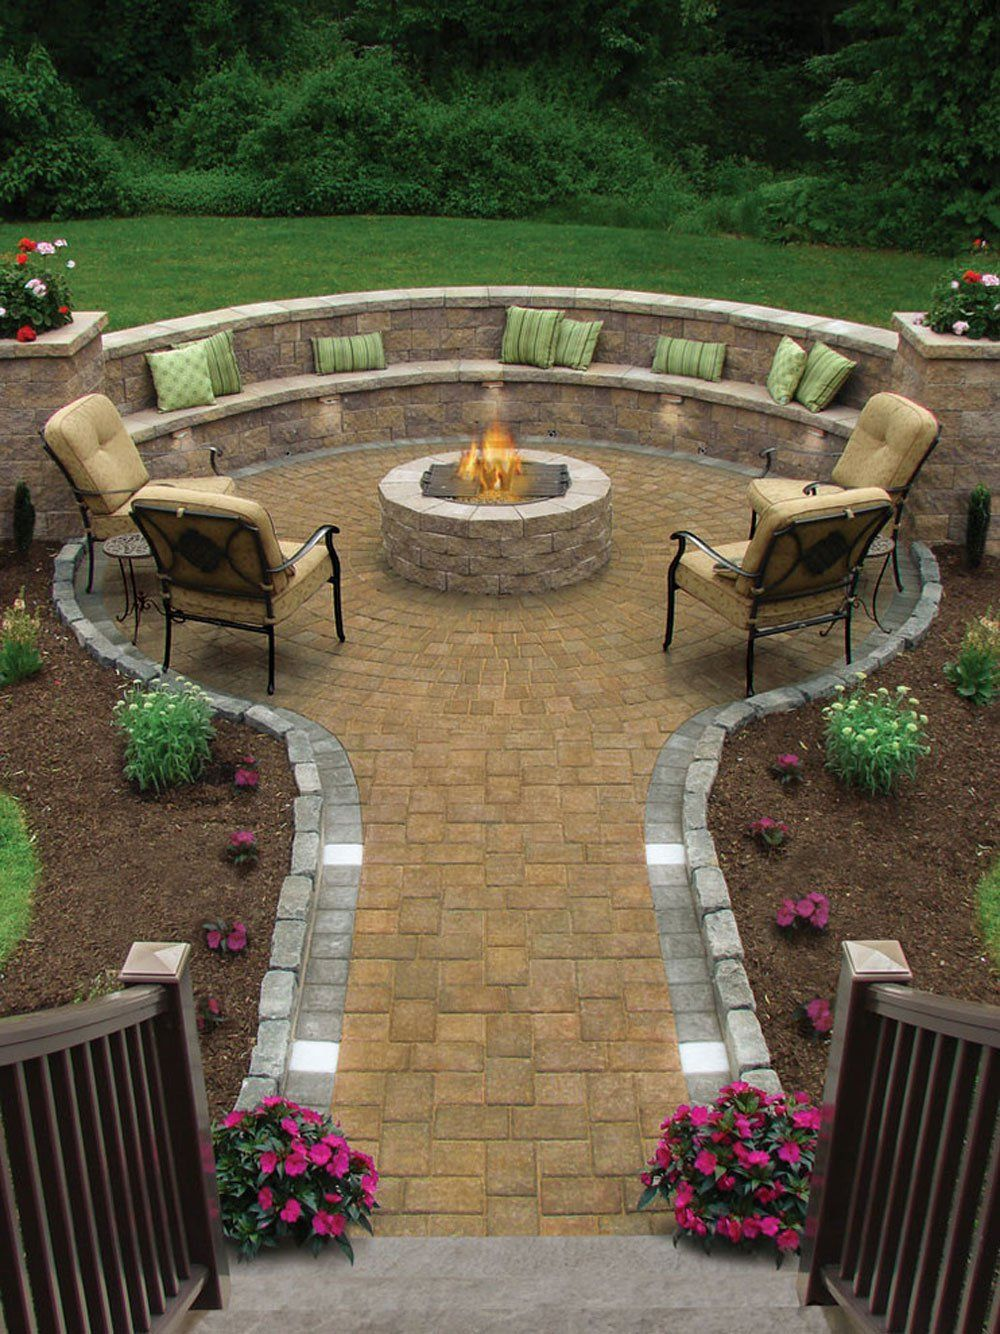 17 Of The Most Amazing Seating Area Around Fire Pit Ever